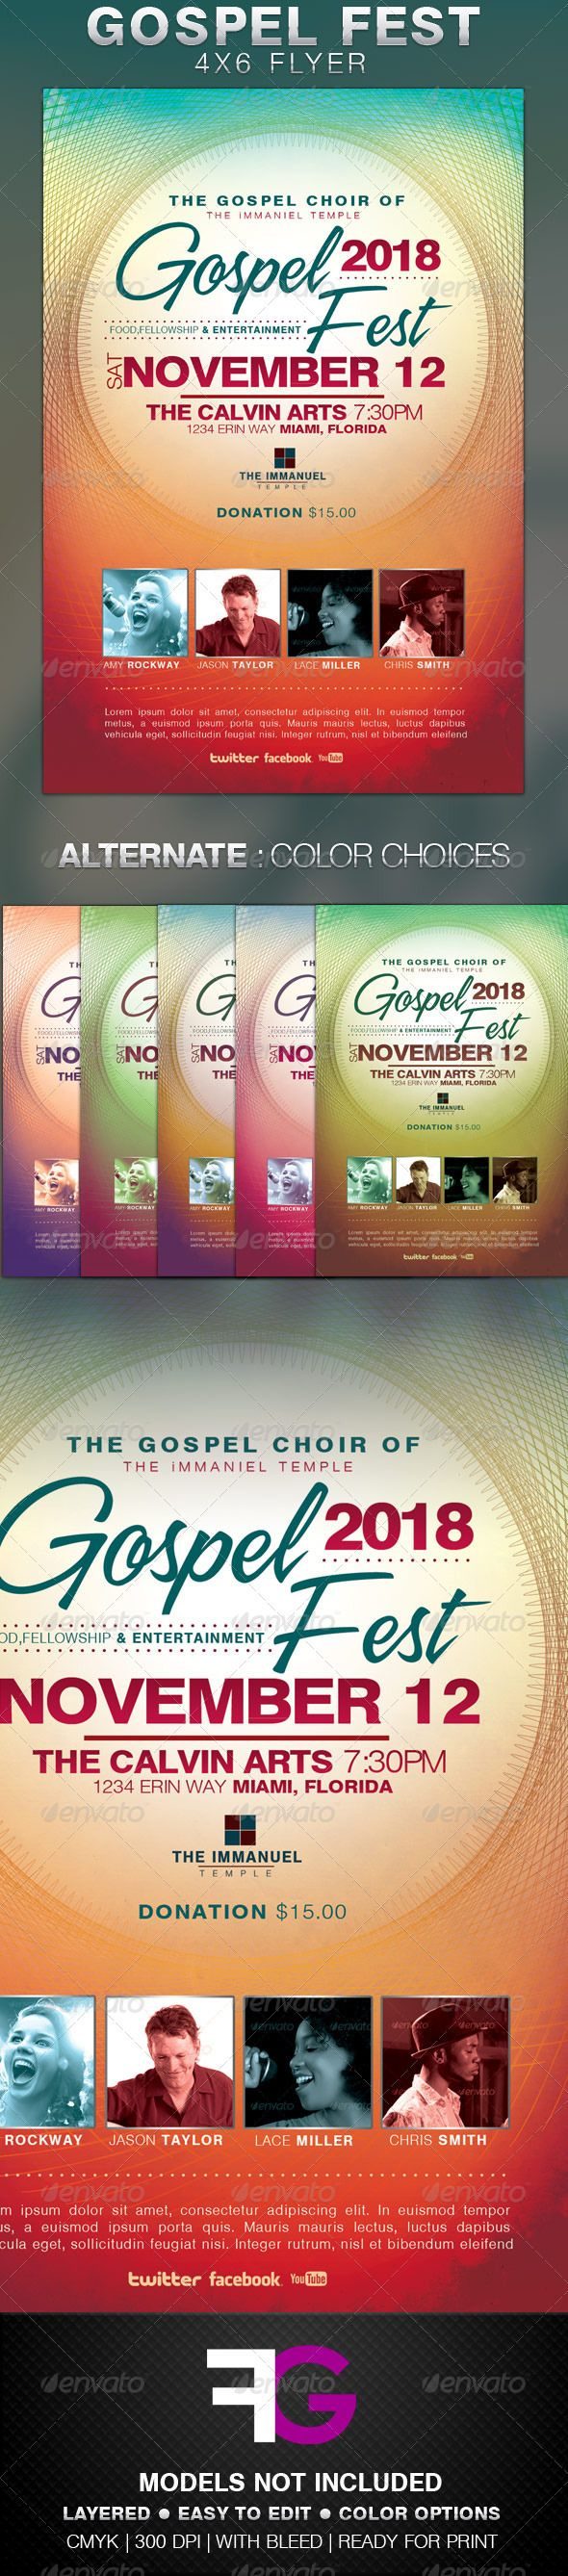 this gospel fest church flyer template harvest church lyrics this gospel fest church flyer template is made for gospel concerts or any other church events